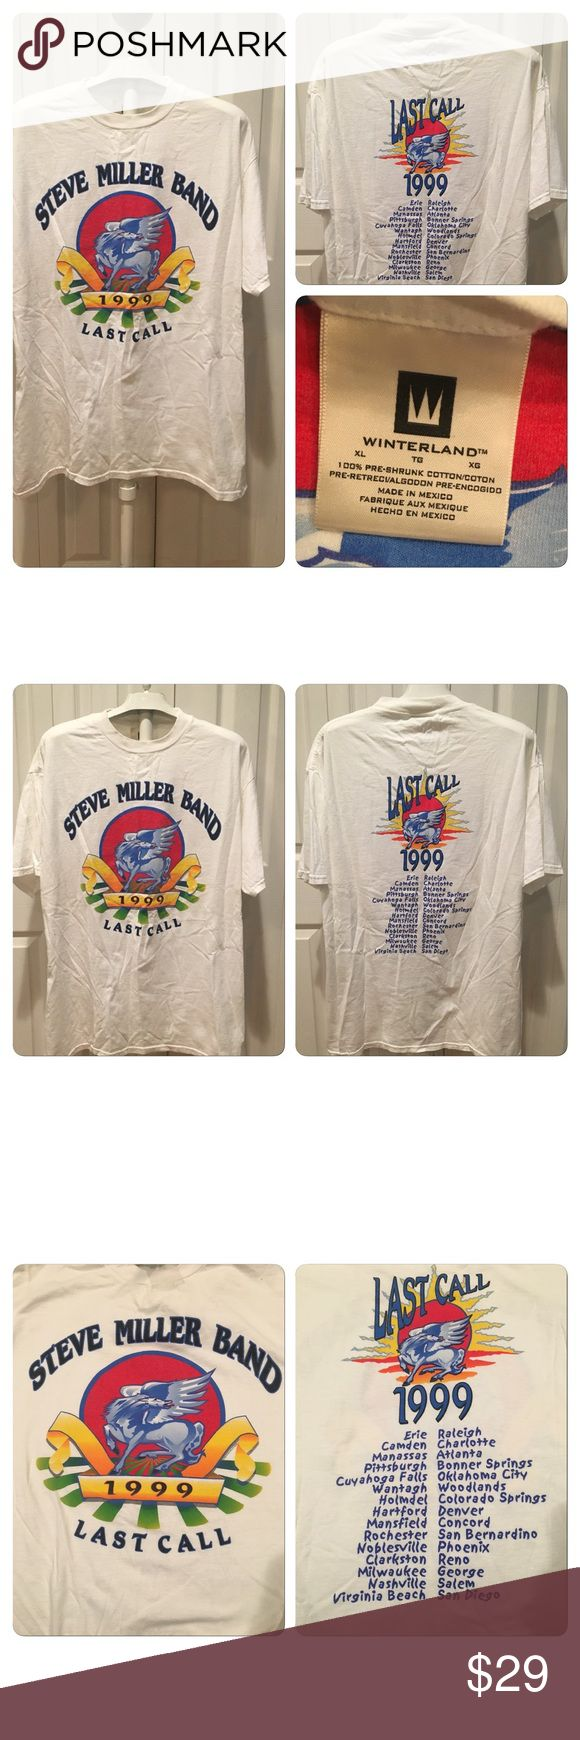 1999 Steve Miller band tour T-shirt 1999 Steve Miller band tour T-shirt.  Printed on 100% cotton Winterland brand white T-shirt. Double-sided graphics. No holes no stains no rips no tears. No yellowing of white T-shirt no fading of graphics Vintage Shirts Tees - Short Sleeve